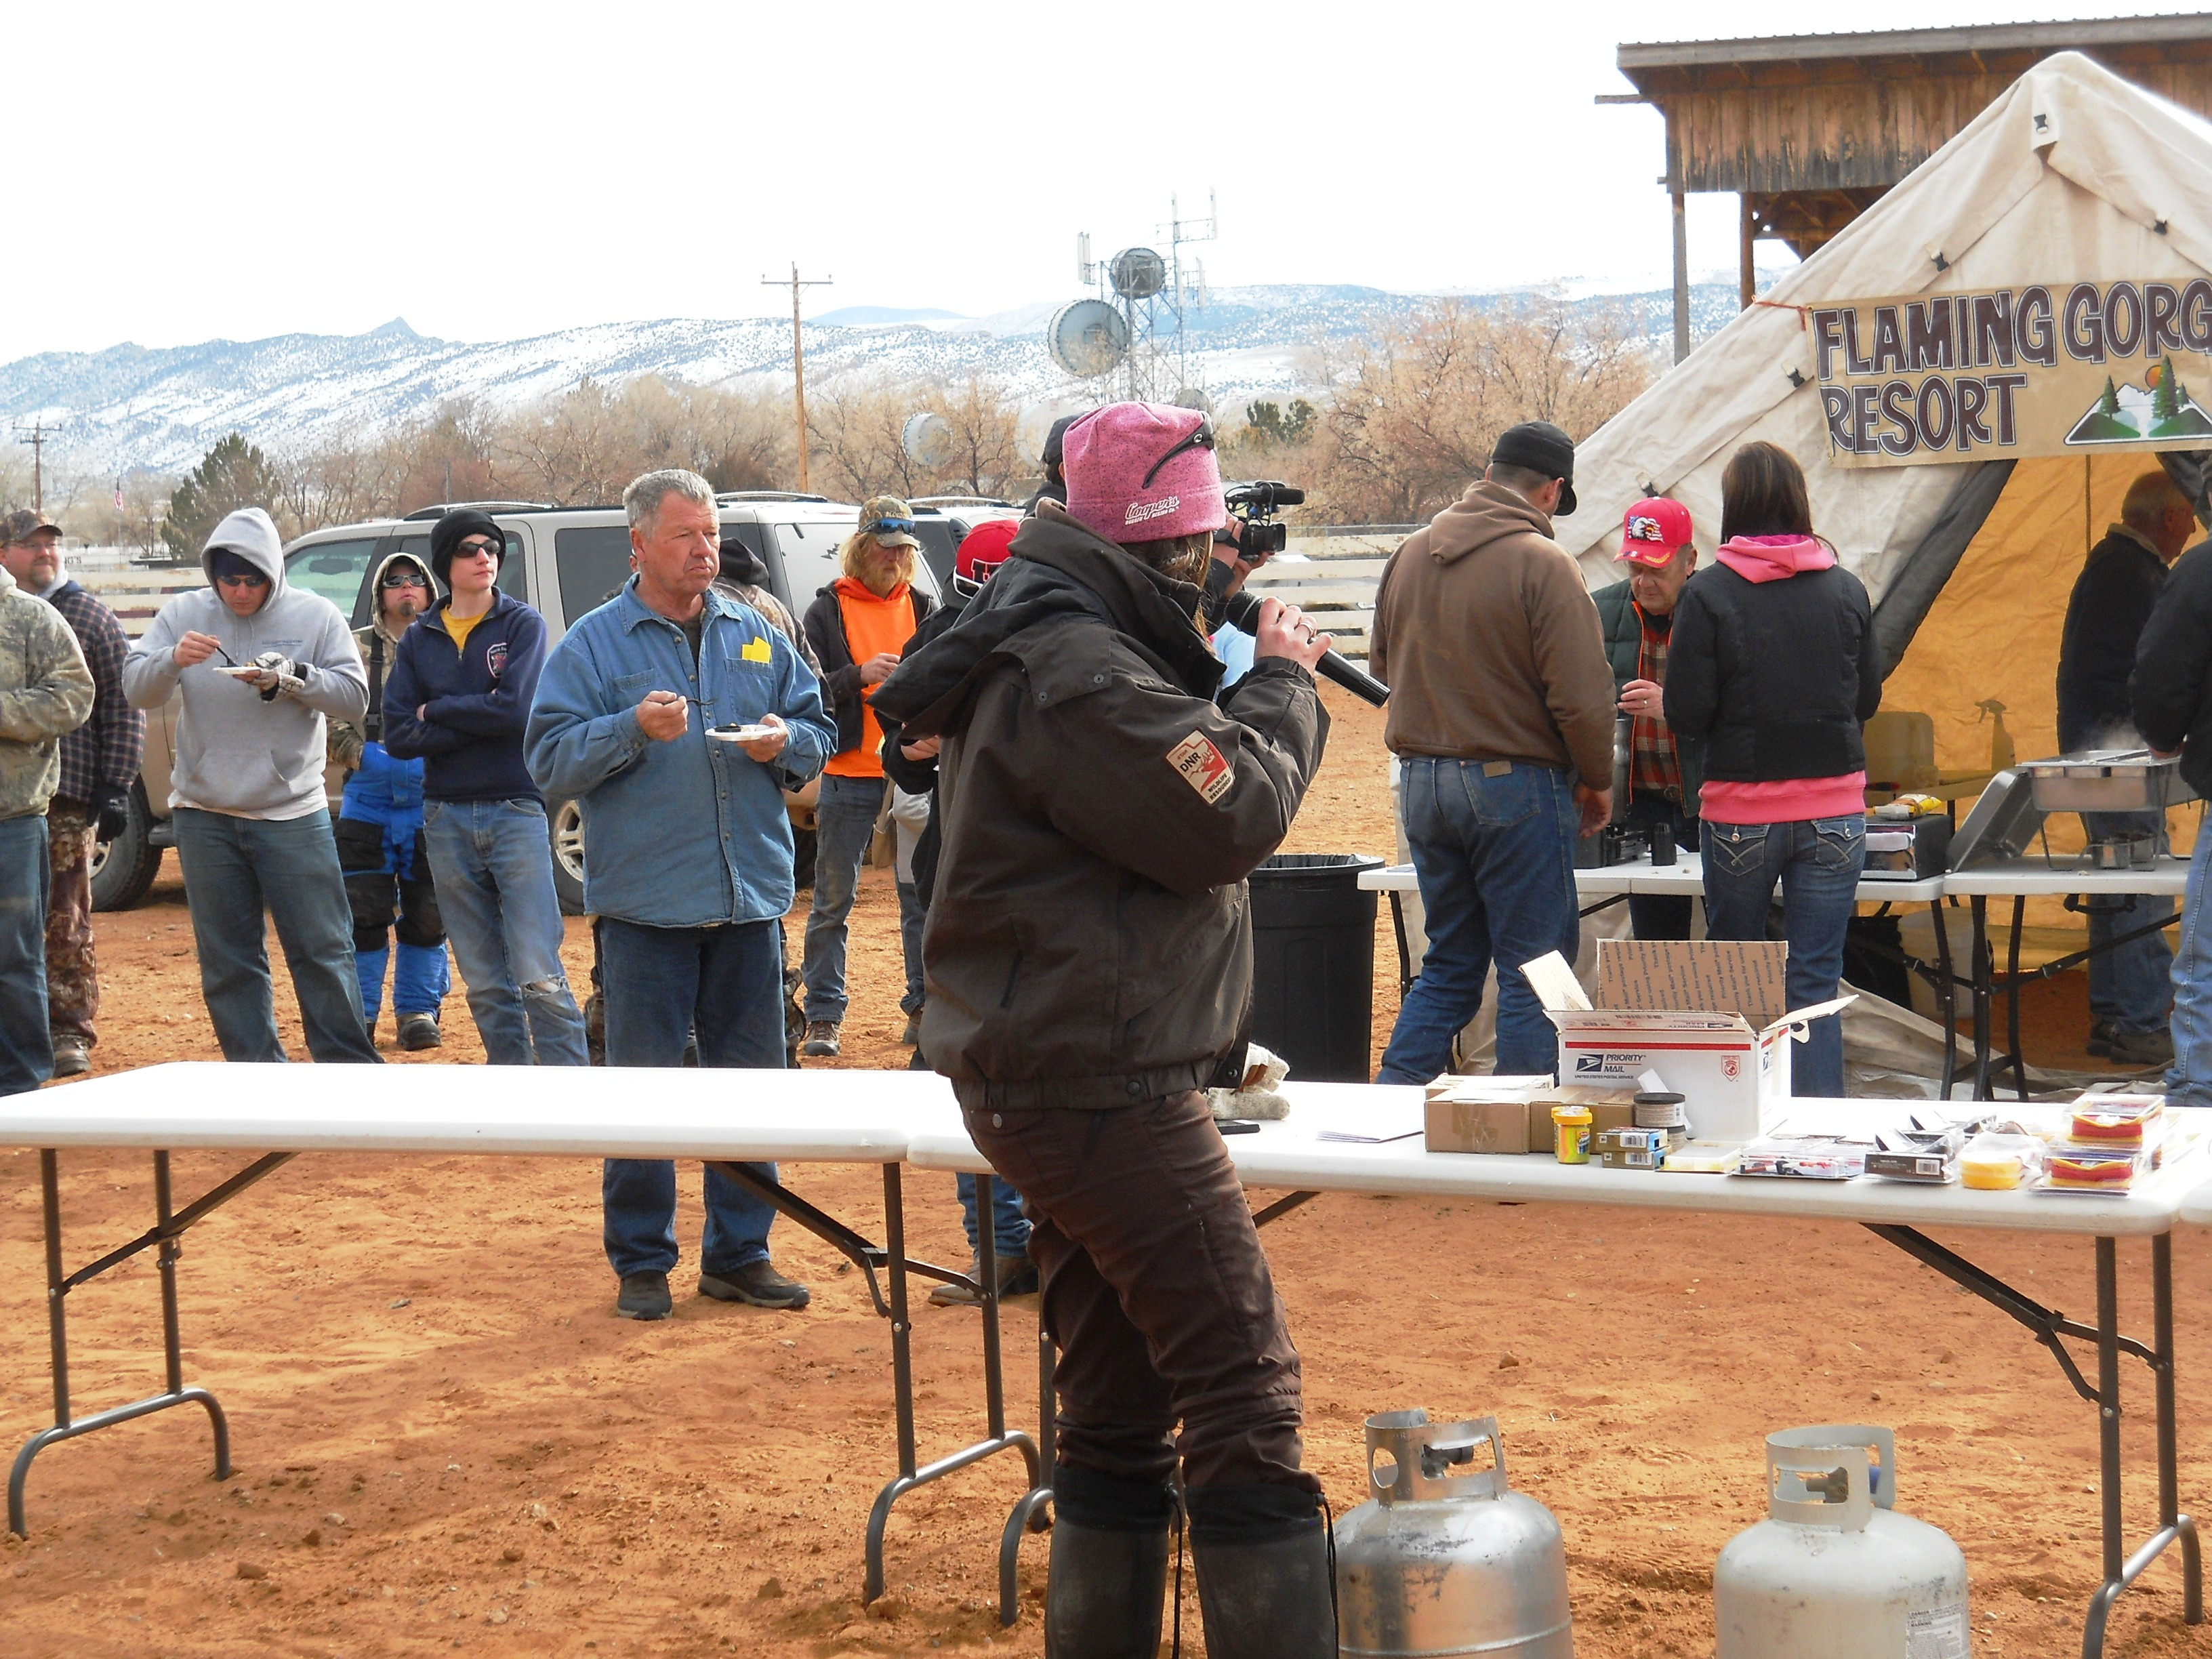 Photo of Tonya Kieffer of KSL's Utah Outdoors makes announcements while Burbot Bash participants enjoy burbot prepared by the Flaming Gorge Resort.